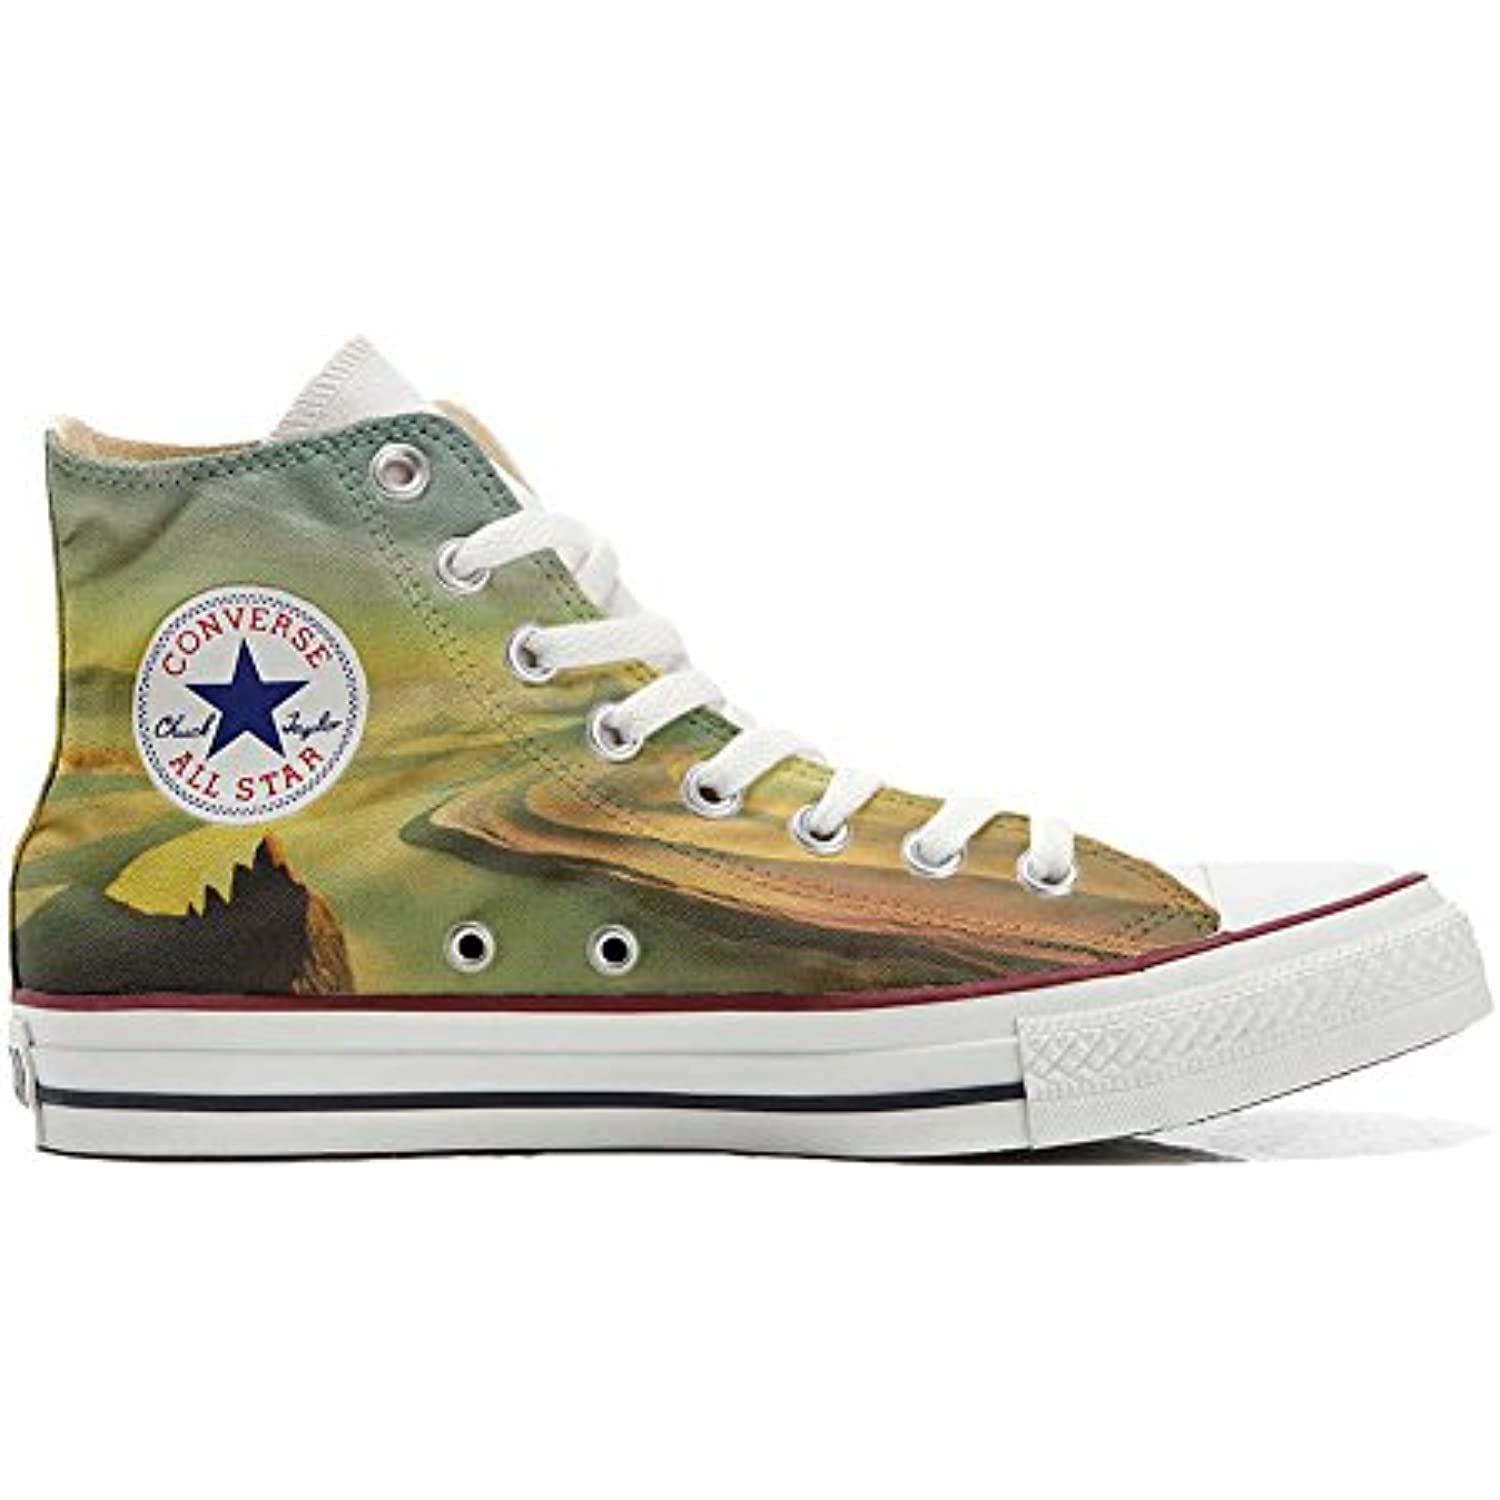 mys Converse All All All Star Chaussures Coutume Mixte Adulte (Produit Artisanal) River - B06X6LLRTV - 40734d